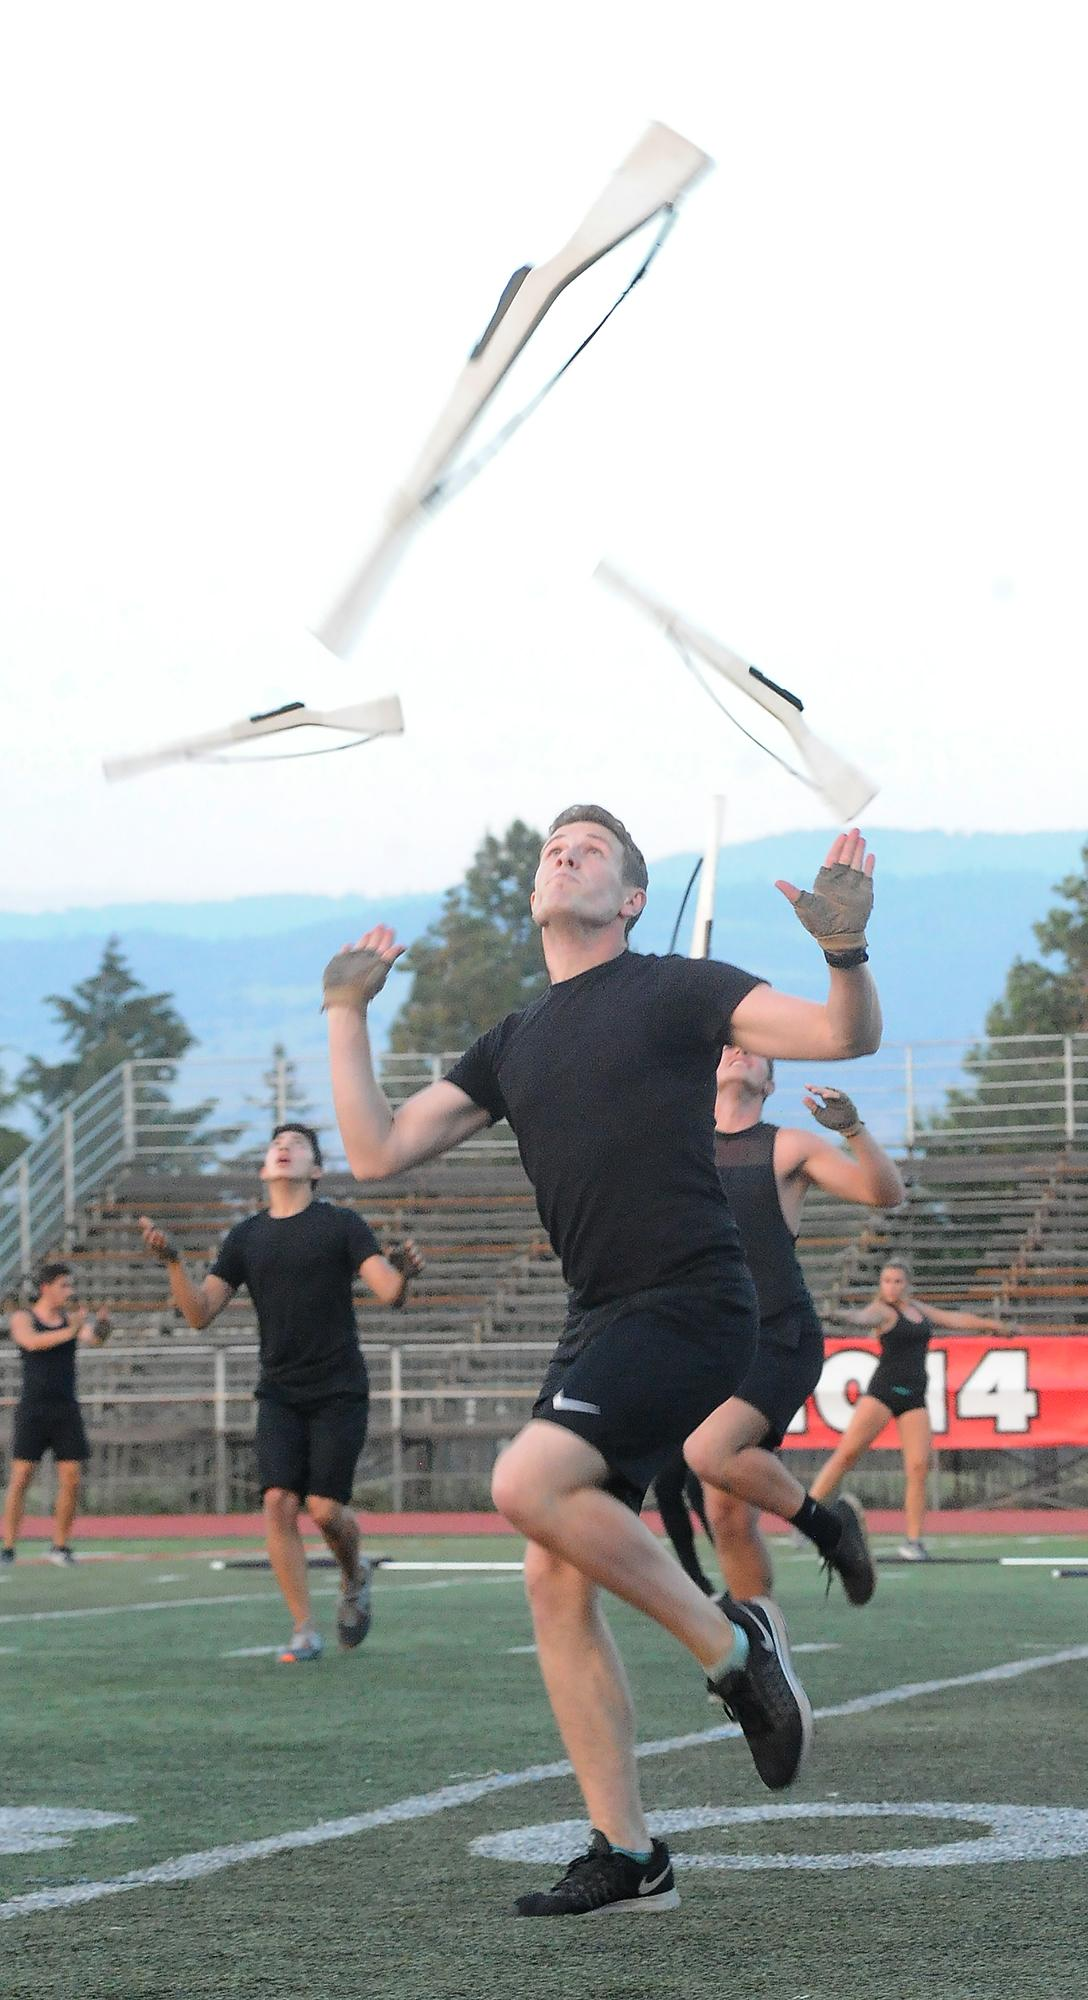 Dancers toss prop rifles into the air during a performance of the Santa Clara Vanguard Drum and Bugle Corps. Photo by Denise Baratta